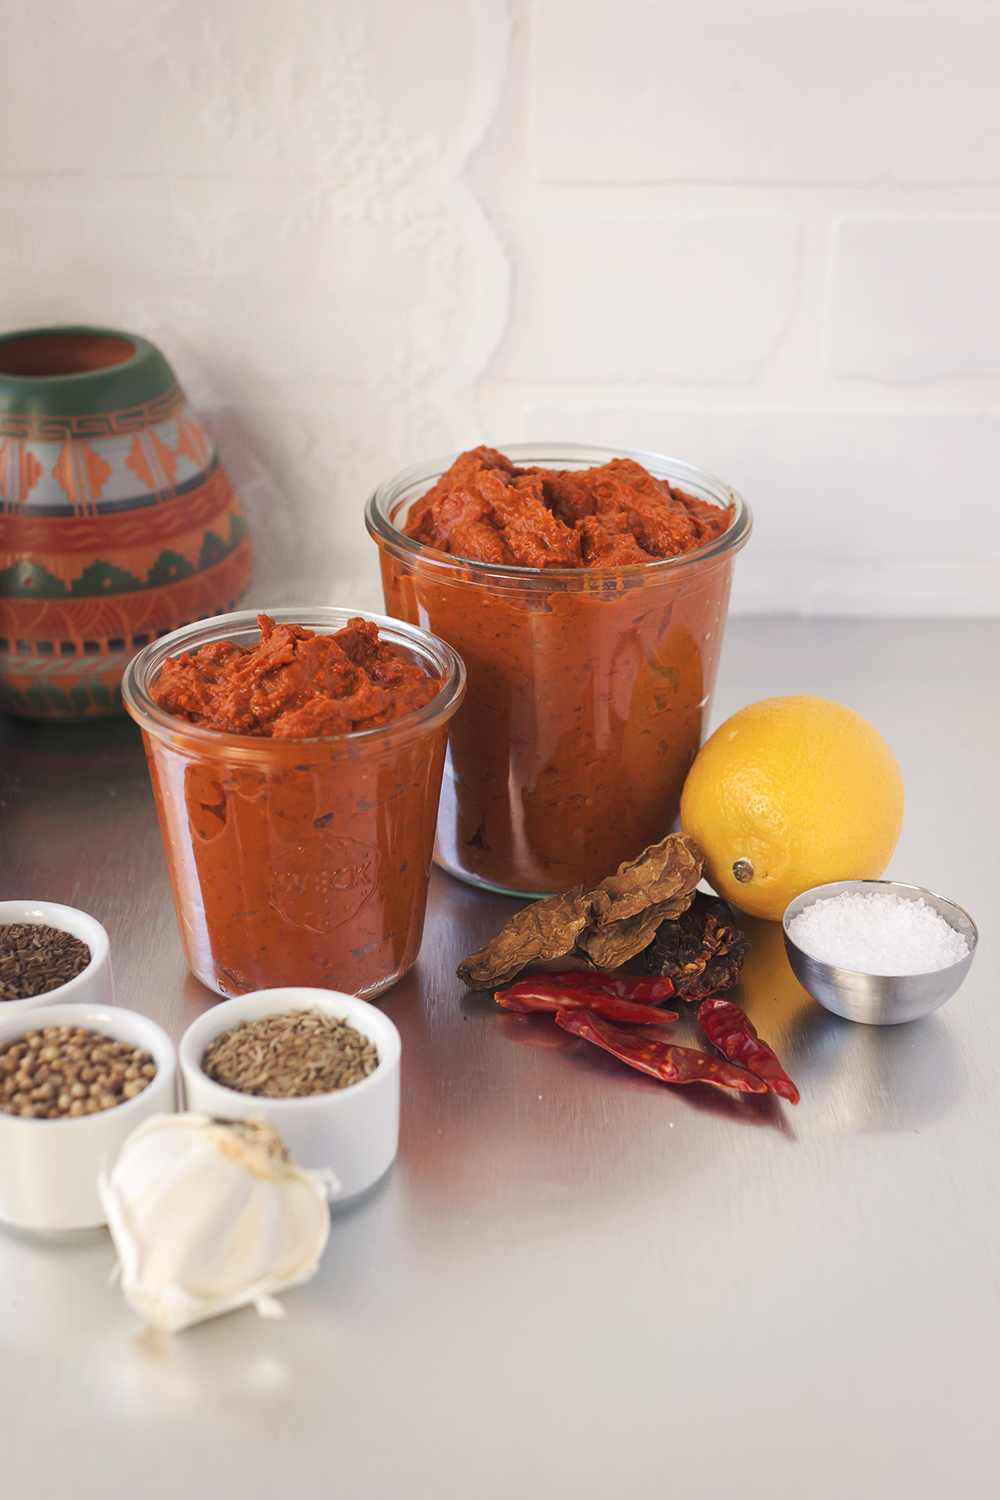 How To Make Harissa Paste Tasty Yummies Healthy Recipes